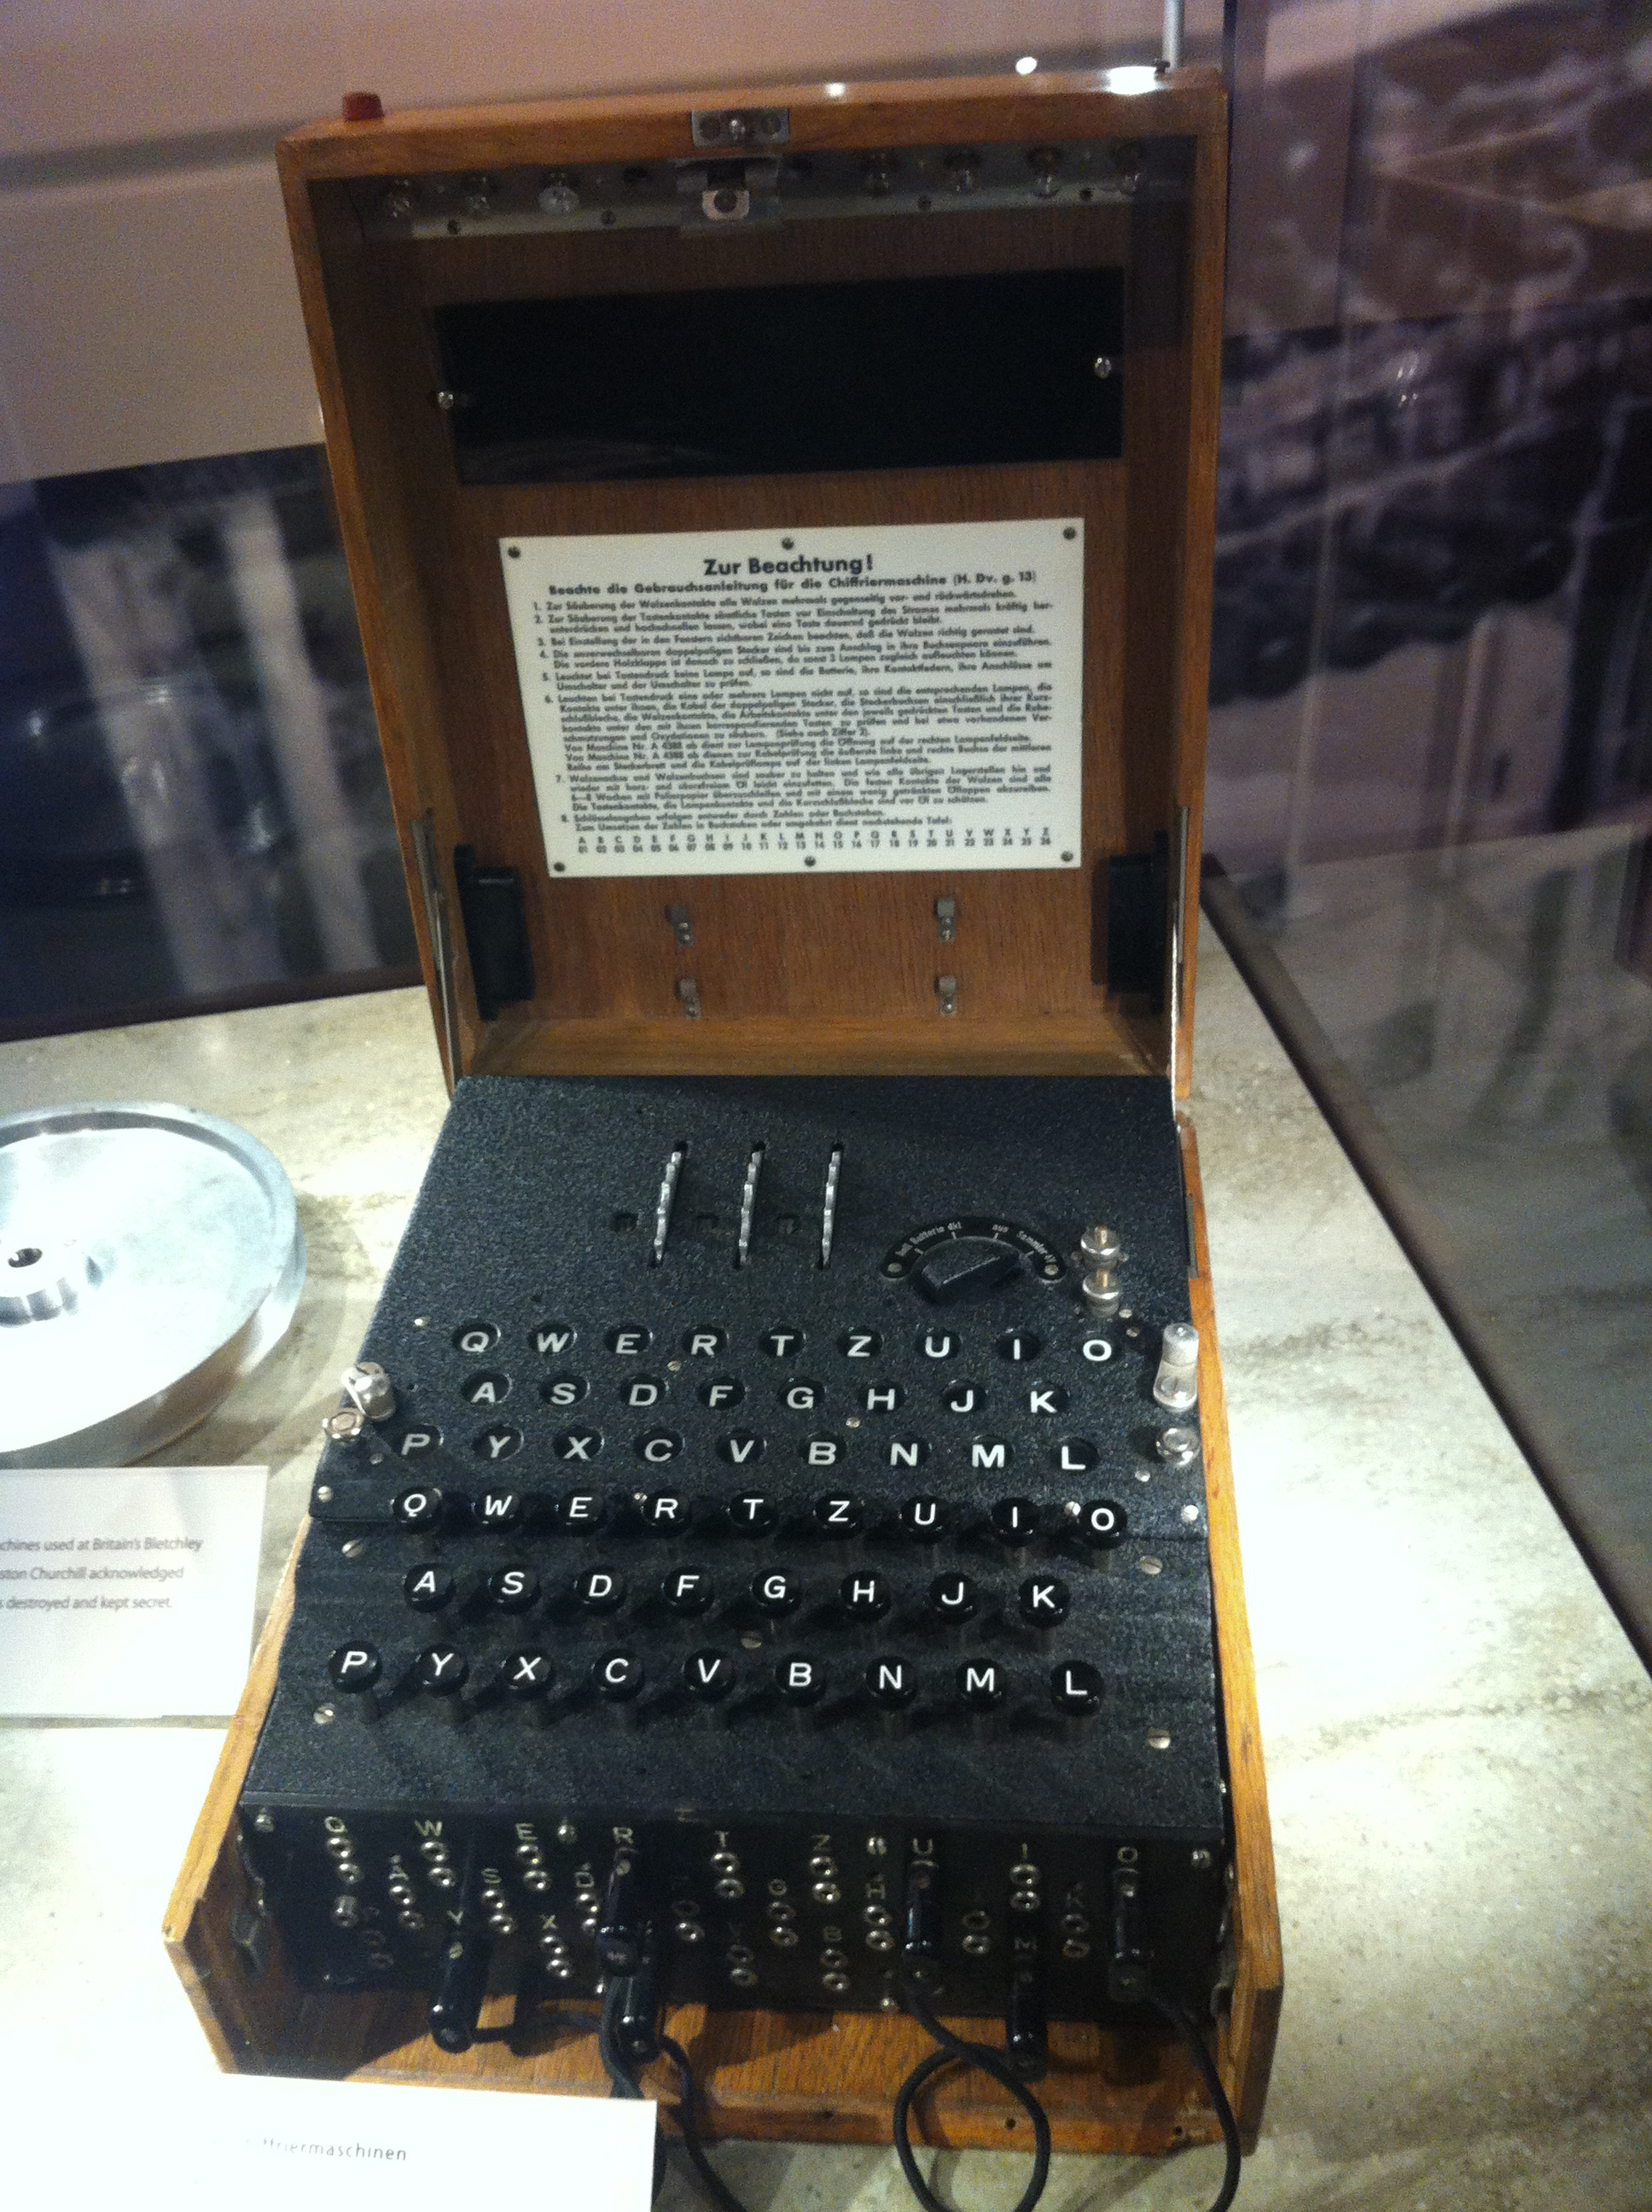 A look at the history of the information machine the computer